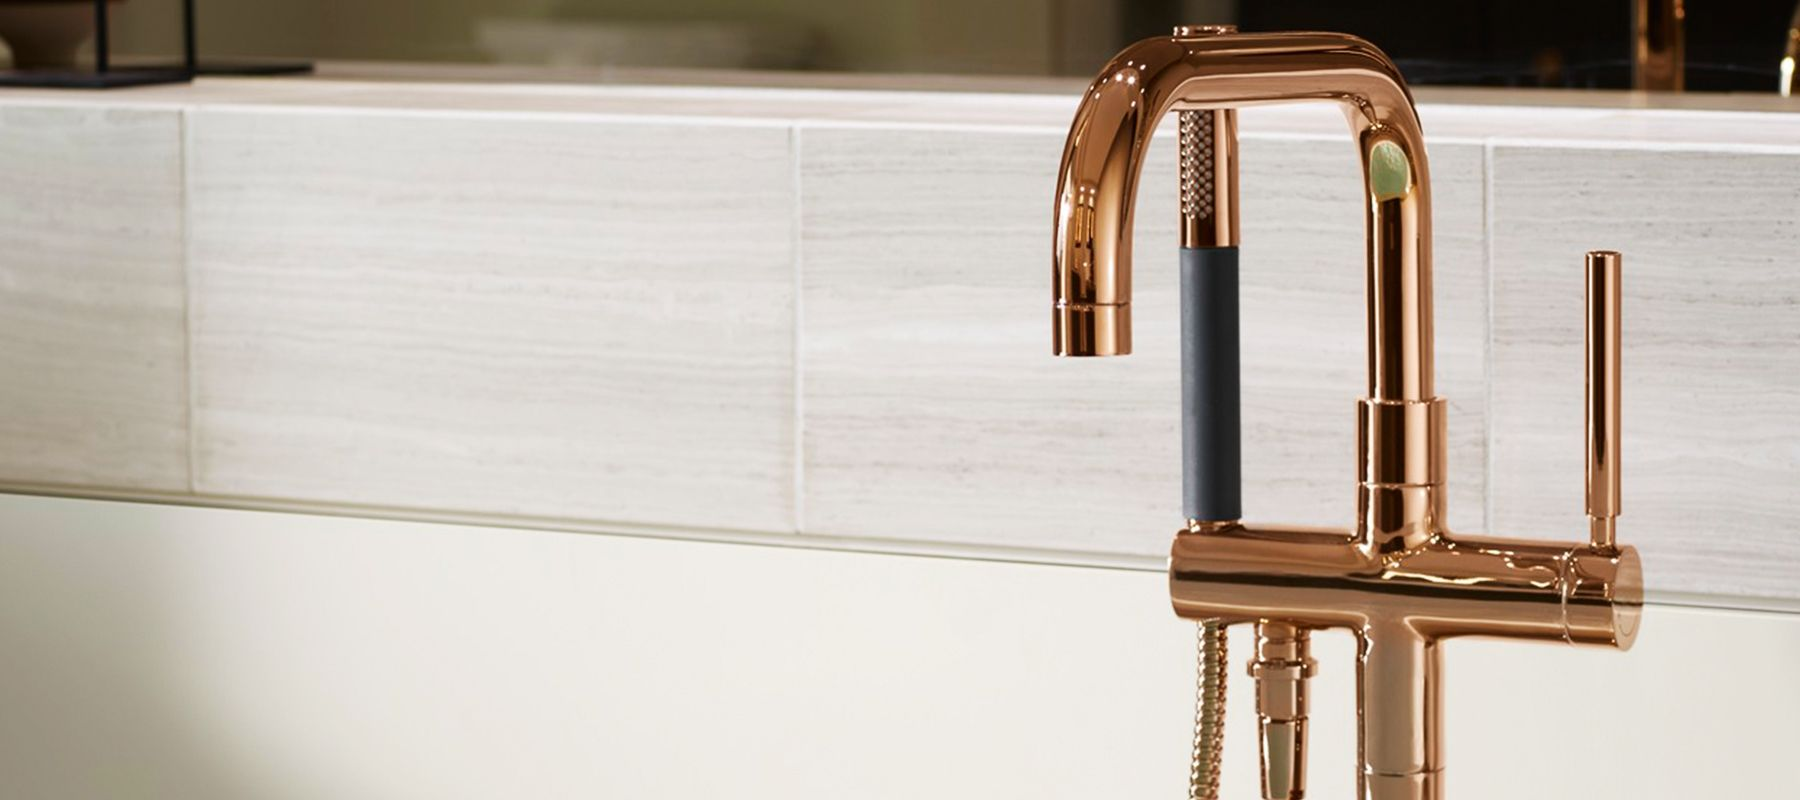 Kohler S Newest Vibrant Rose Gold Faucet Finish Blends Two Of